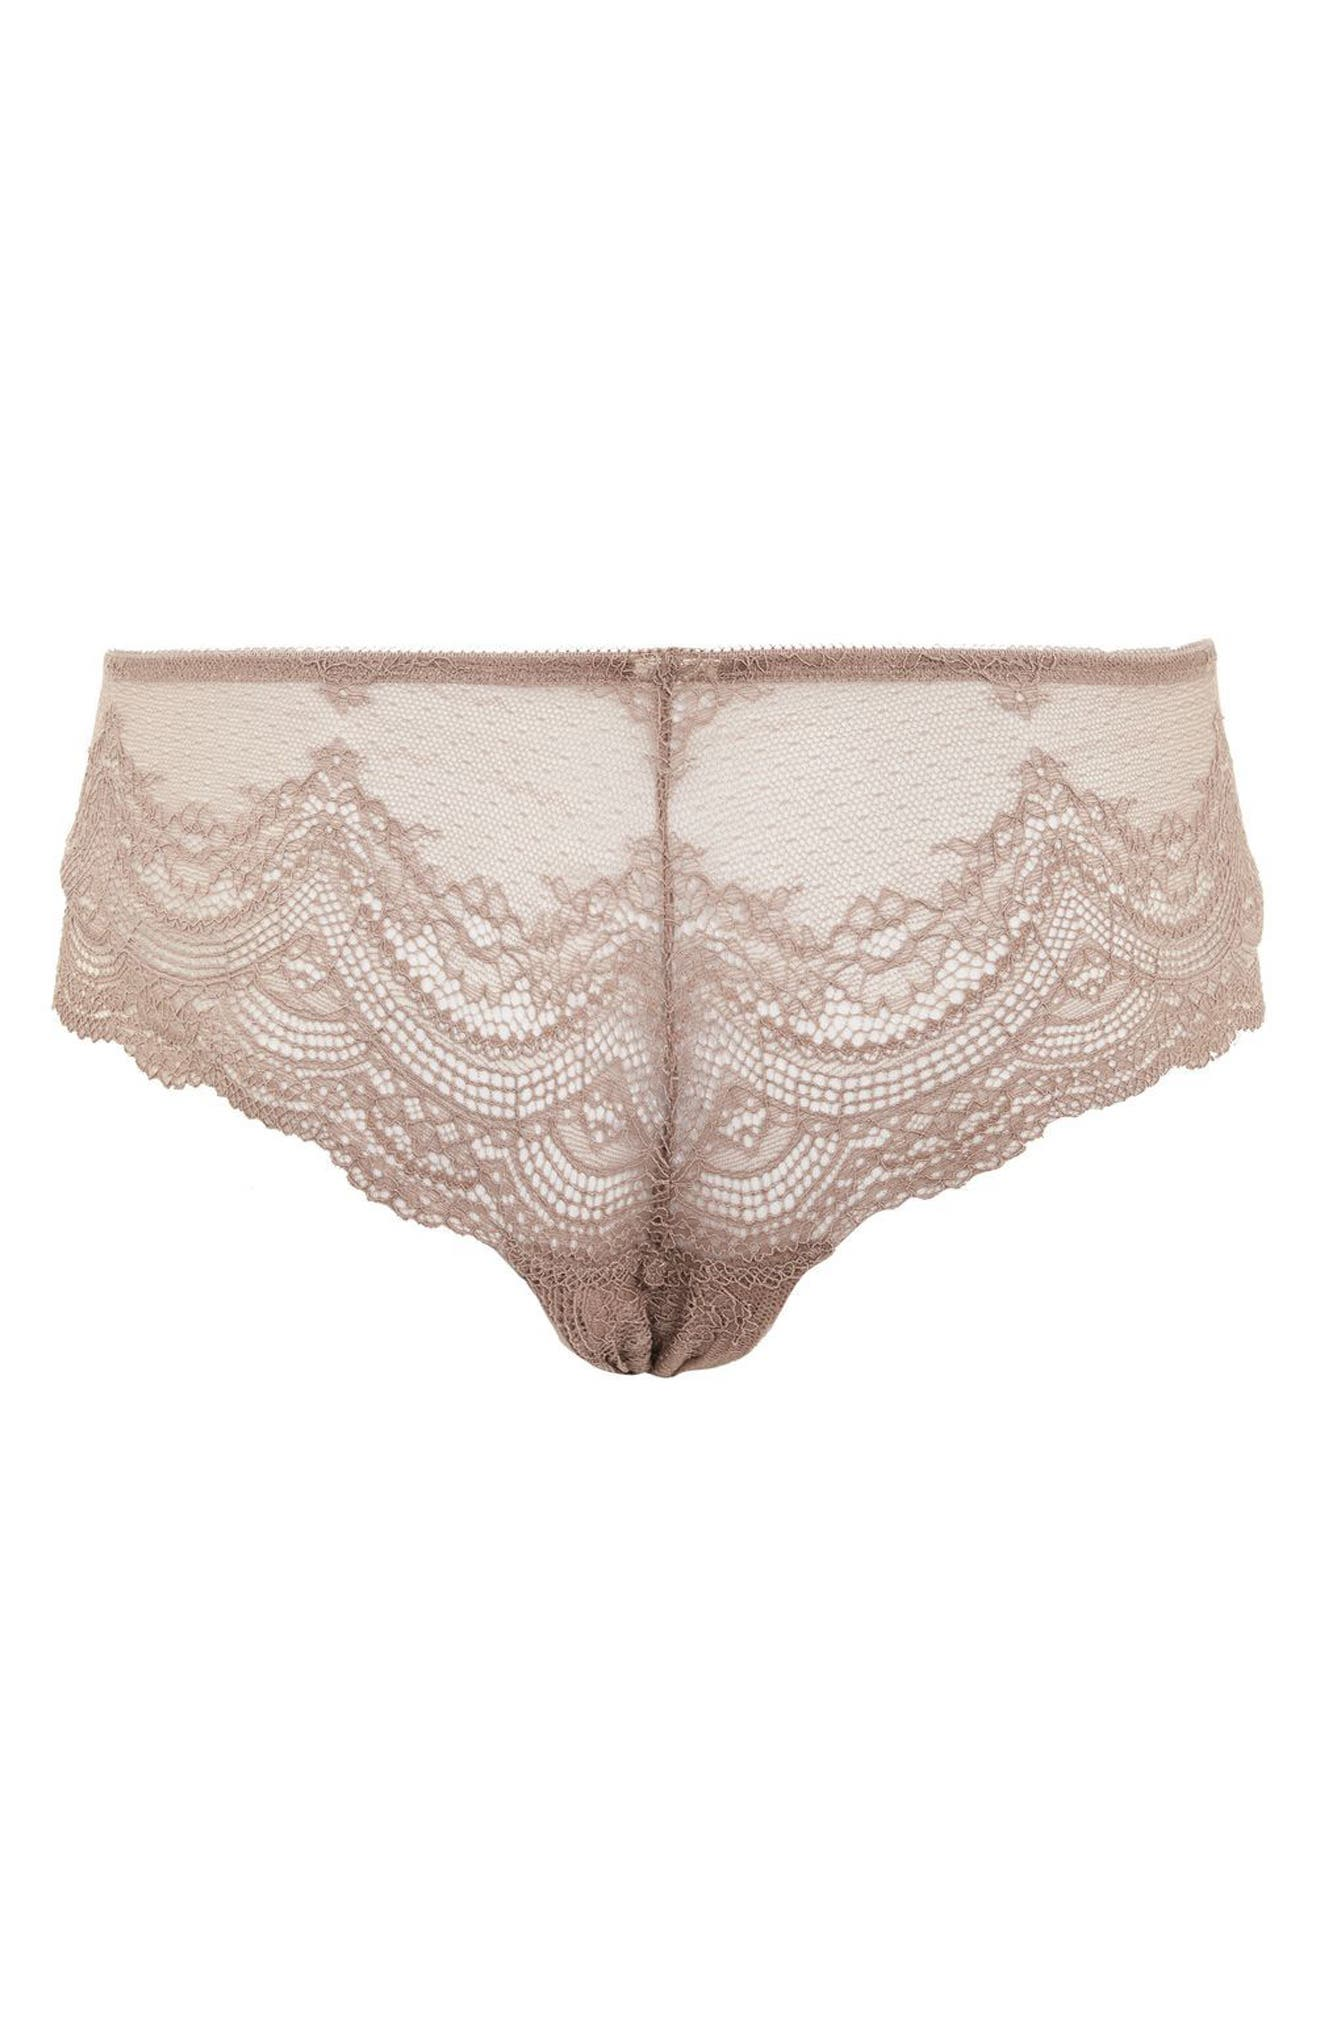 Alternate Image 2  - Topshop Deep Lace Brazilian Panties